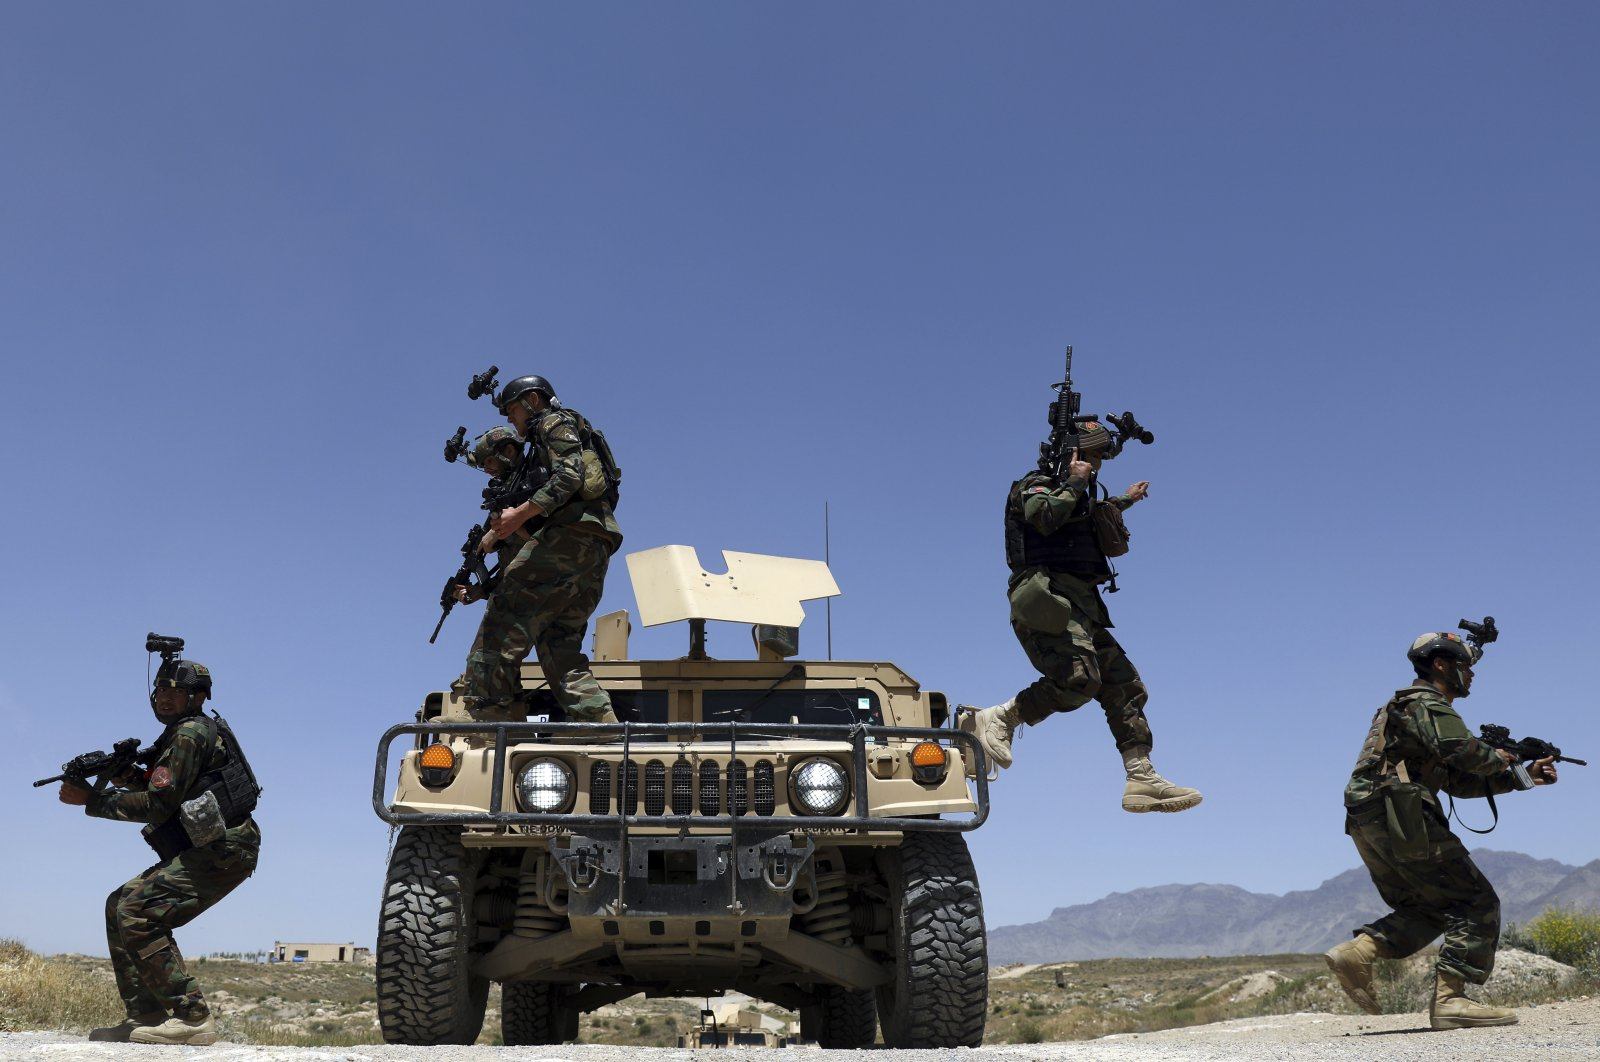 Afghan soldiers patrol outside their military base on the outskirts of Kabul, Afghanistan, May 9, 2021. (AP Photo)